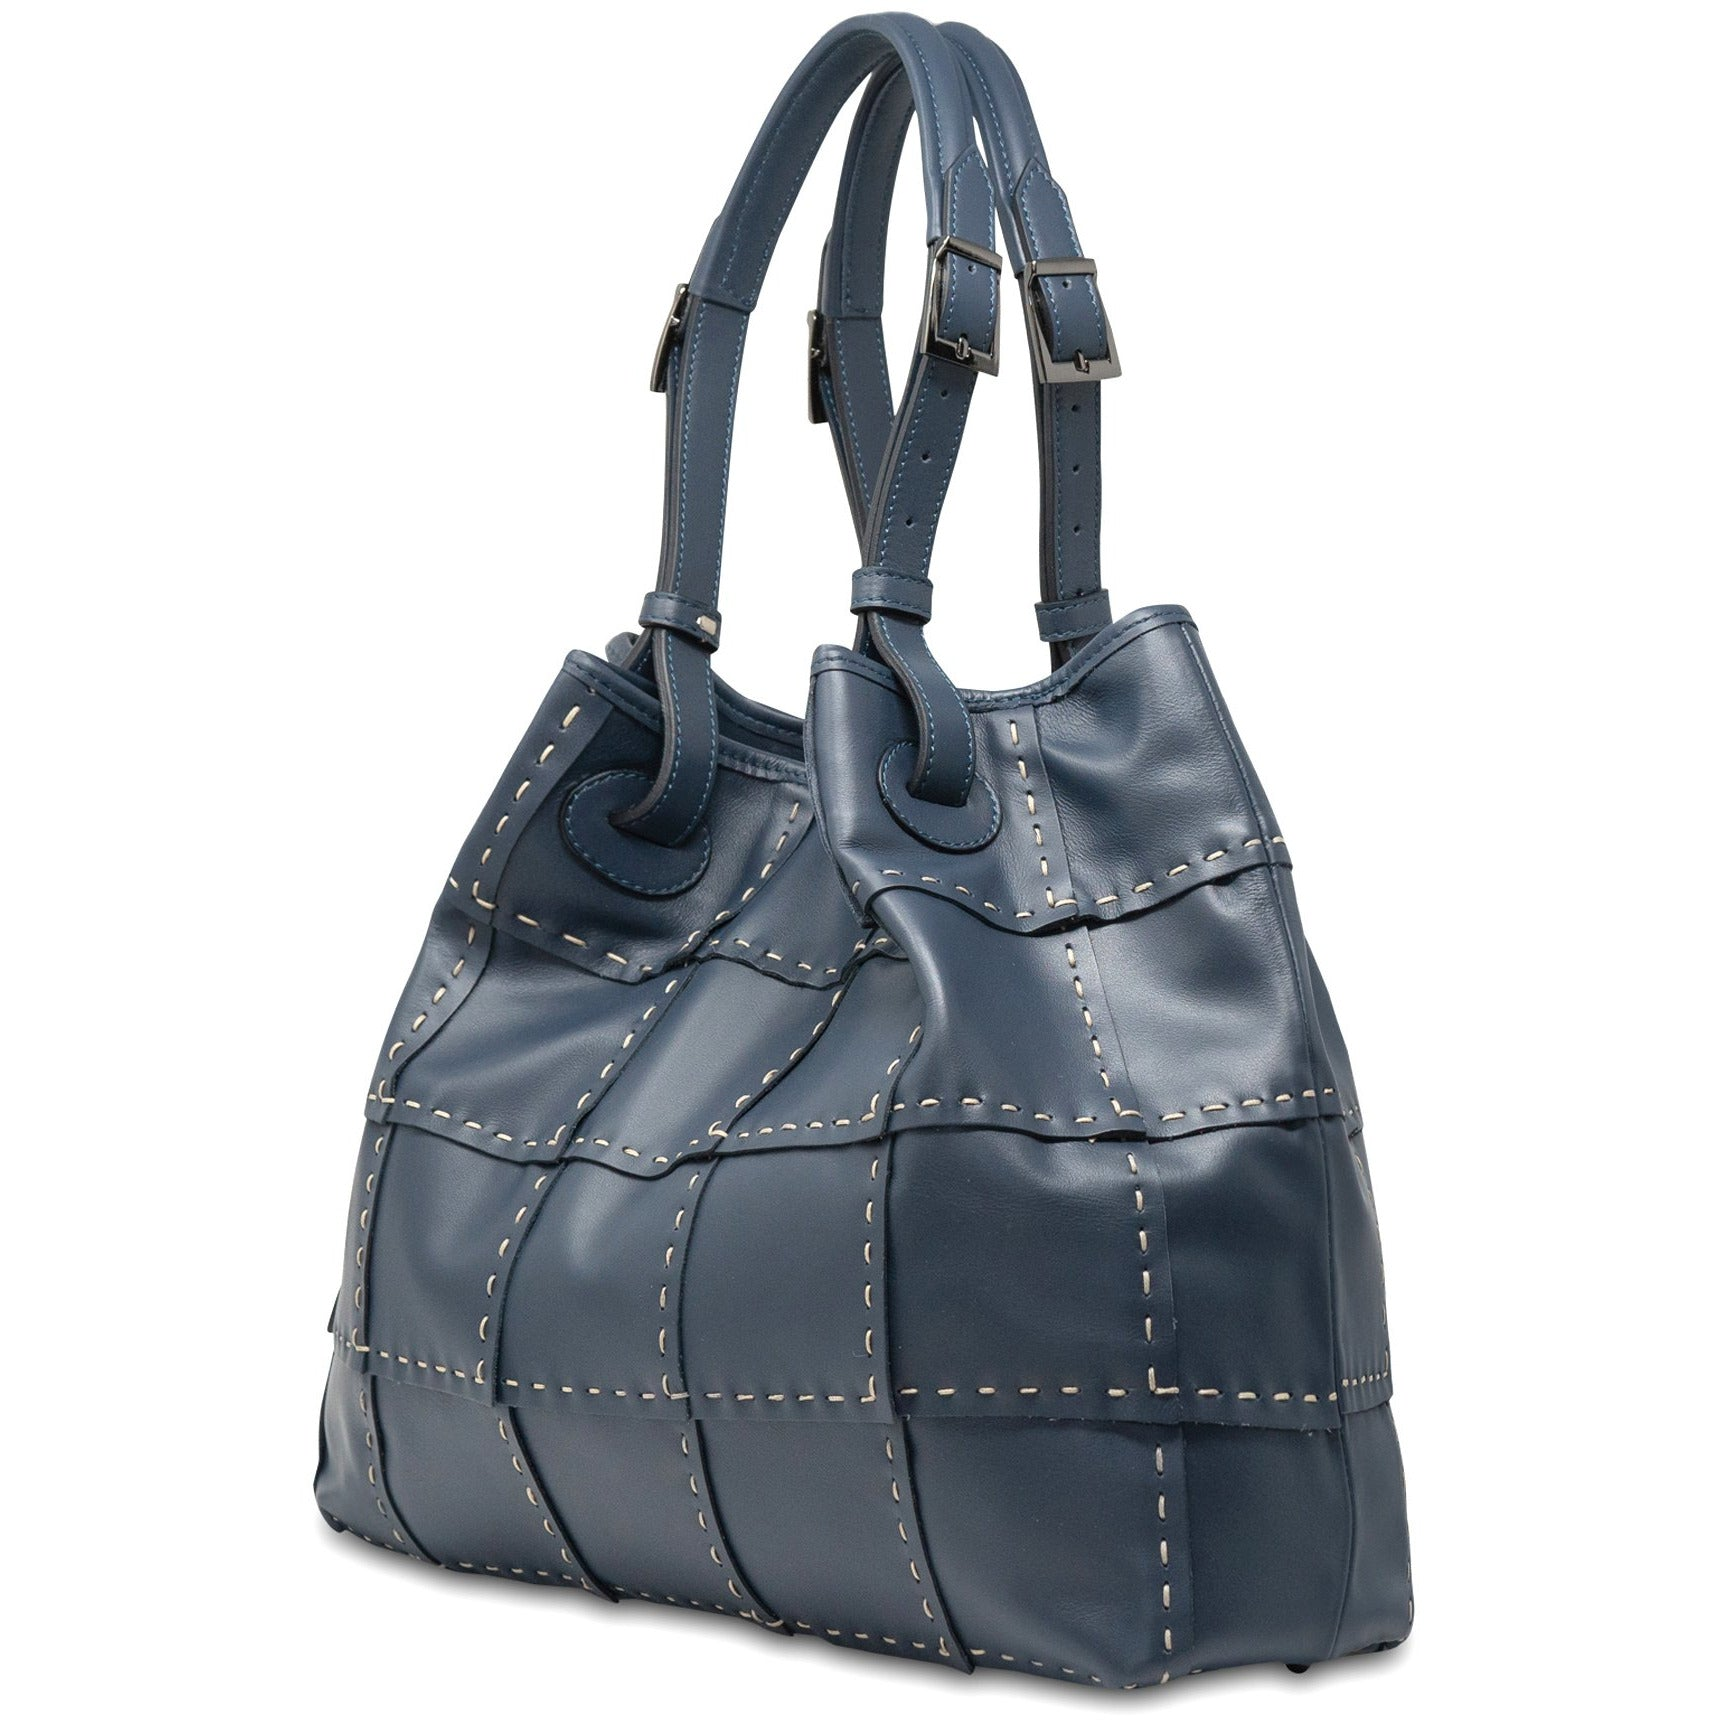 Alessia M Women Leather Shoulder Tote in Navy - Jennifer Tattanelli